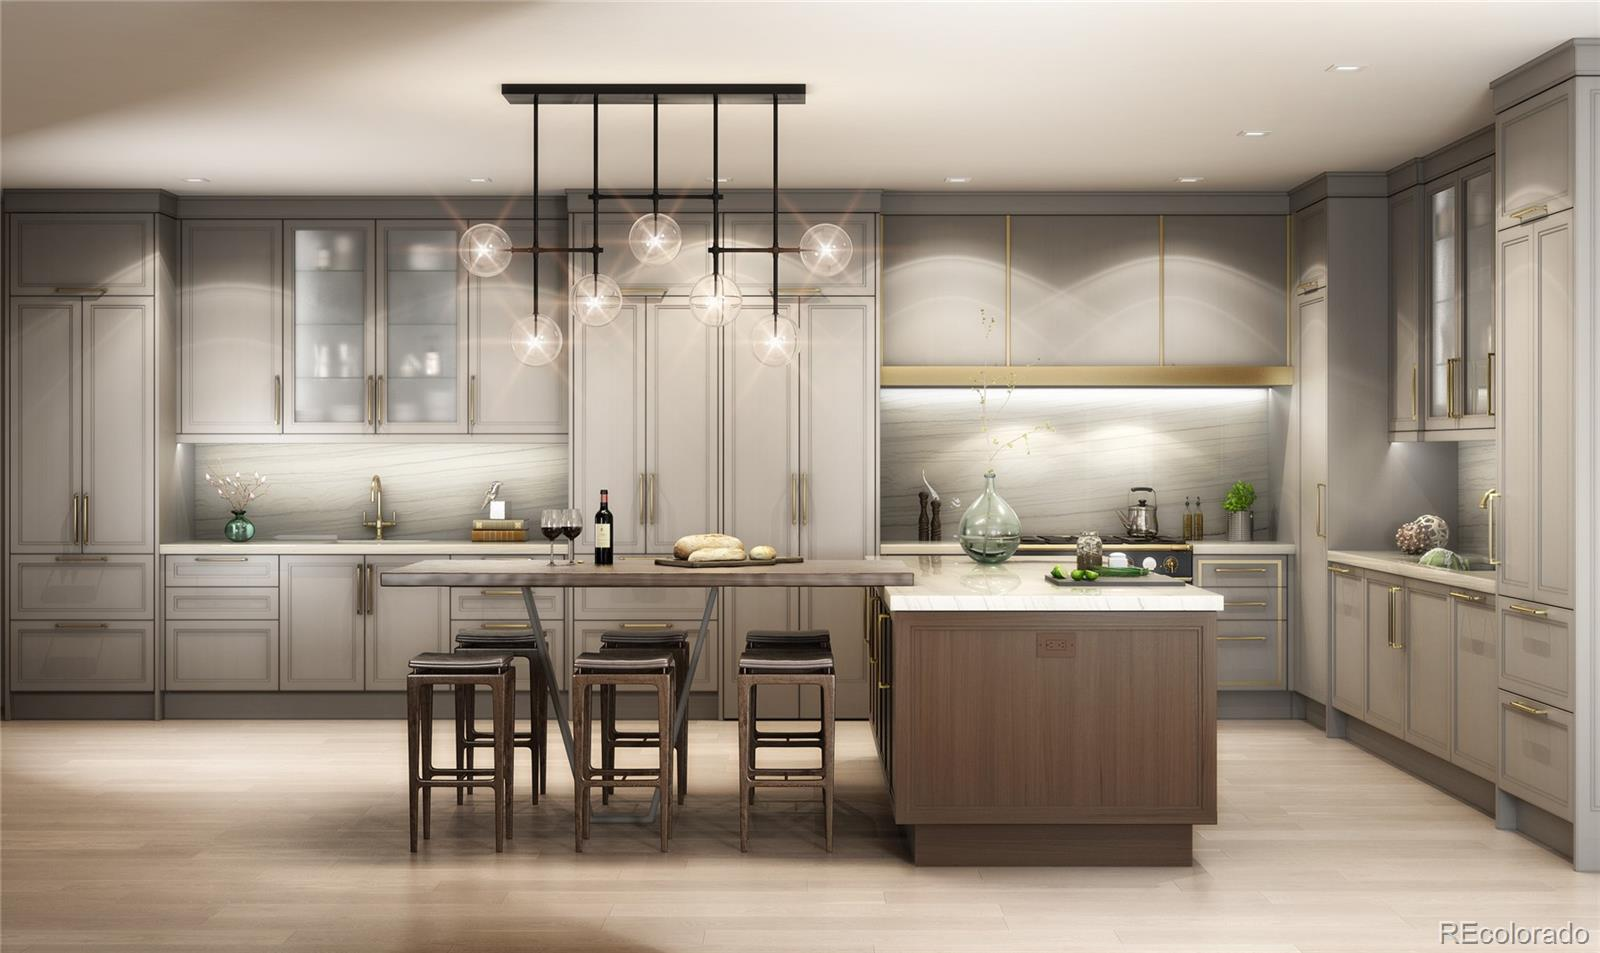 """Welcome to a rare penthouse offering in Cherry Creek! This is One Polo Creek Building's newest and most elegant unit which has been completely renovated and transformed using the finest and intricate attention to detail possible. The floors and custom closets are in and the tile work and cabinets are being set right now! Bring your decorator to finish personalizing this space just for you as we are getting close to the finish line. Indulge in the luxuries of a 5-star hotel without leaving home. This stunning Cherry Creek penthouse which has expansive views of the Rocky Mountains, city skyline, and Denver Country Club golf course. As you walk in you are immediately impressed with elegance of the herringbone marble floors and a see- through fireplace that leads you into living room and kitchen. The kitchen comes complete with new designer appliances: the Range is from La Cornue at 43"""" wide, matt black with stainless and polished brass accents, two large sinks, under cabinet lighting, a spacious island that seats six, and a sizable butler's pantry. White quartz countertops complement the sleek gray cabinets and modern brass finishing's. A luxurious bath, steam shower, and more marble floors make it even more of a haven. The quiet and private guest room is equipped with a full en-suite bath. The impressive office, with its own private entrance, is ready for you to run your business while overlooking the main room where you can still enjoy the beautiful views. Four deeded parking spots and a storage unit located in the underground garage. Call for your private tour today! Building amenities include an elegant grand lobby, valet and full concierge services, 24-hour security and doormen, guest suites, a fully equipped fitness center, on-site car washing, visitor parking, and more. Beyond the views, it's the perfect location, just steps away from the Cherry Creek Mall, upscale shopping district, art galleries, fine dining, and Creekside bike path."""